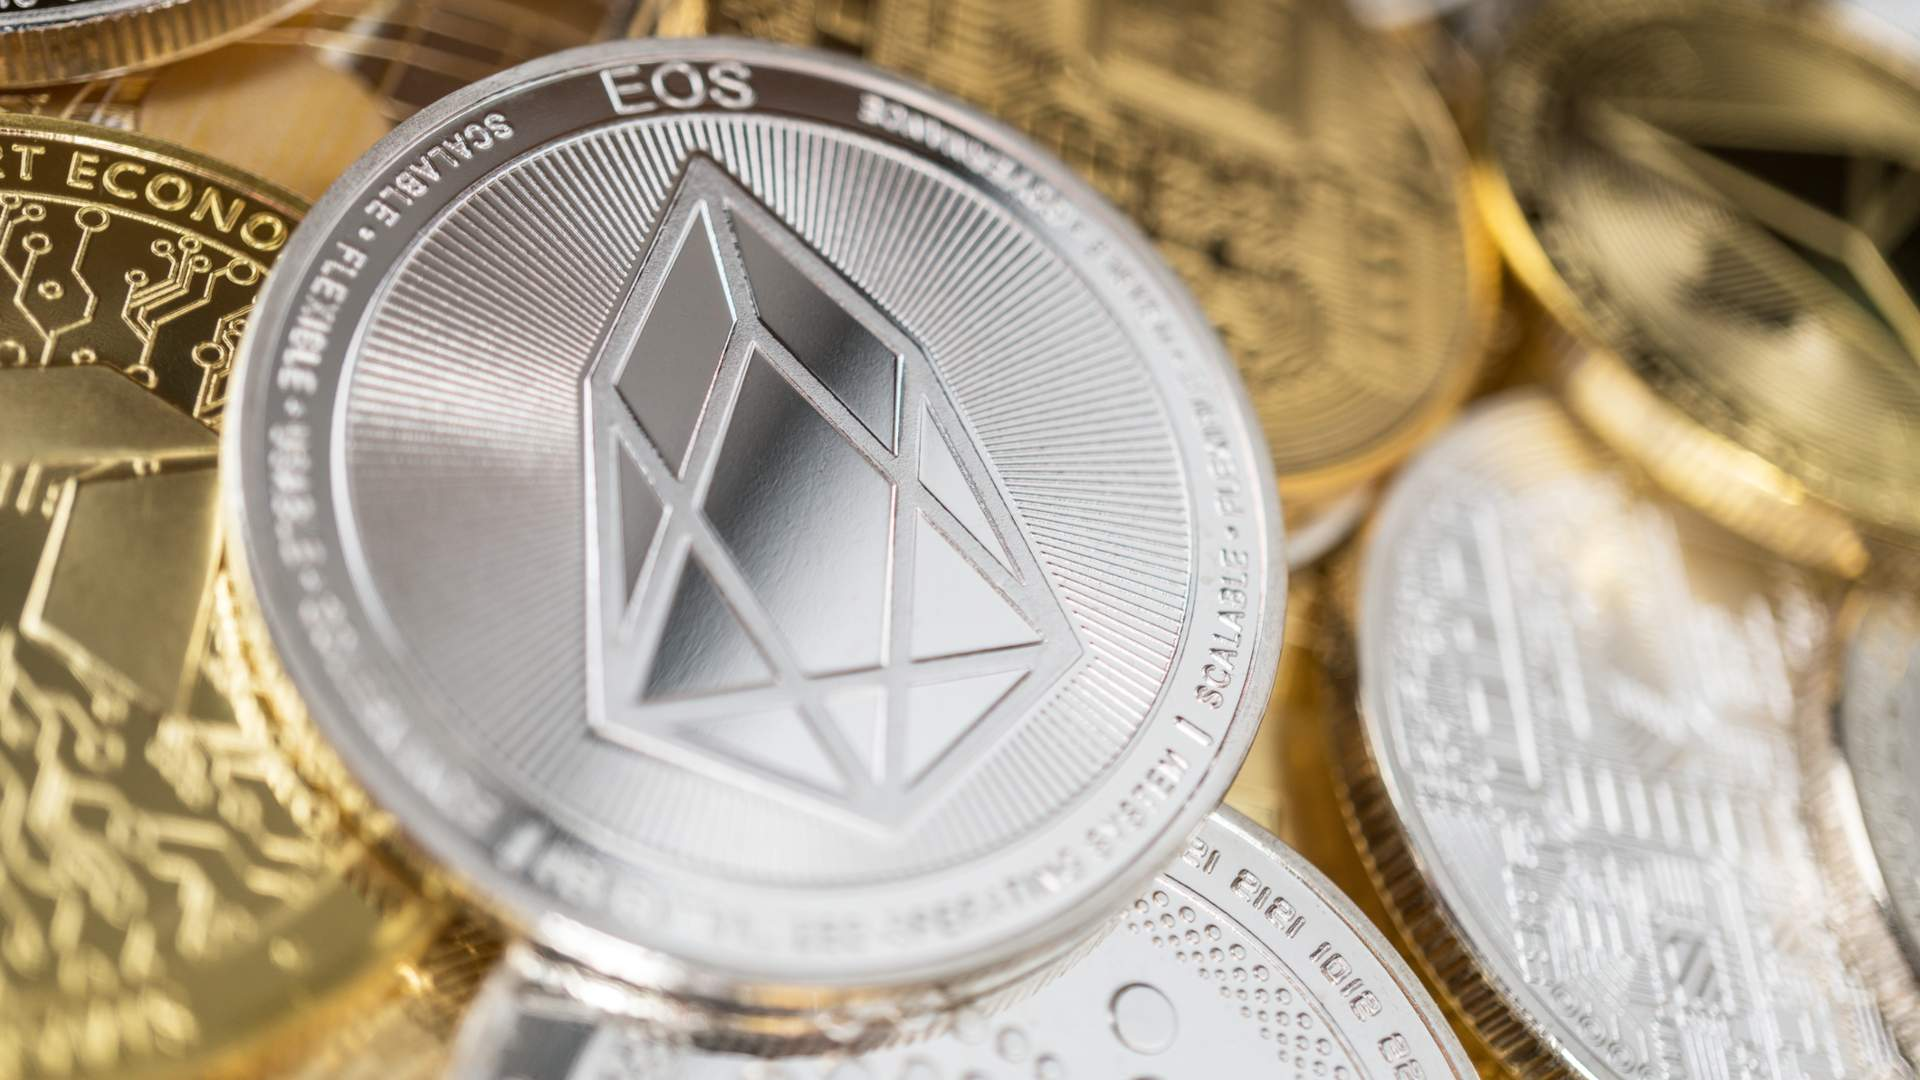 CCID report: the EOS crypto holds the record